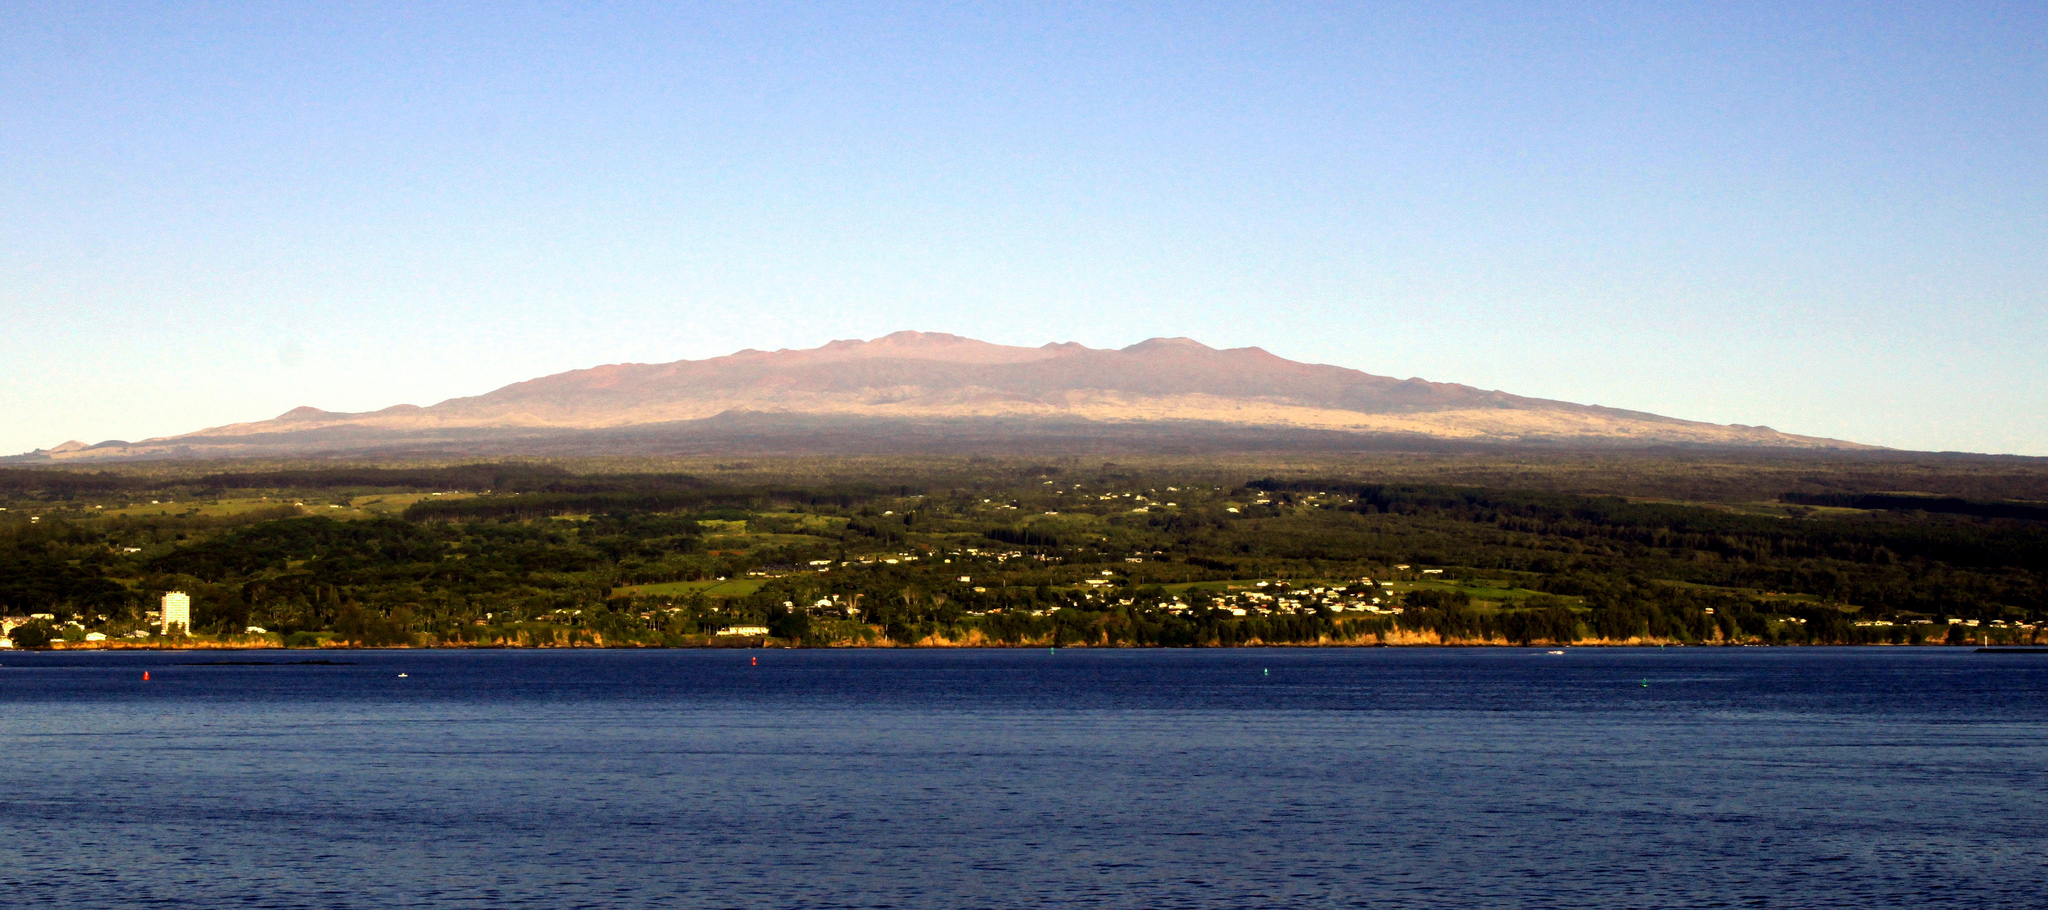 New astronomy course at UH Hilo: Maunakea as a contemporary place of contrasting world views